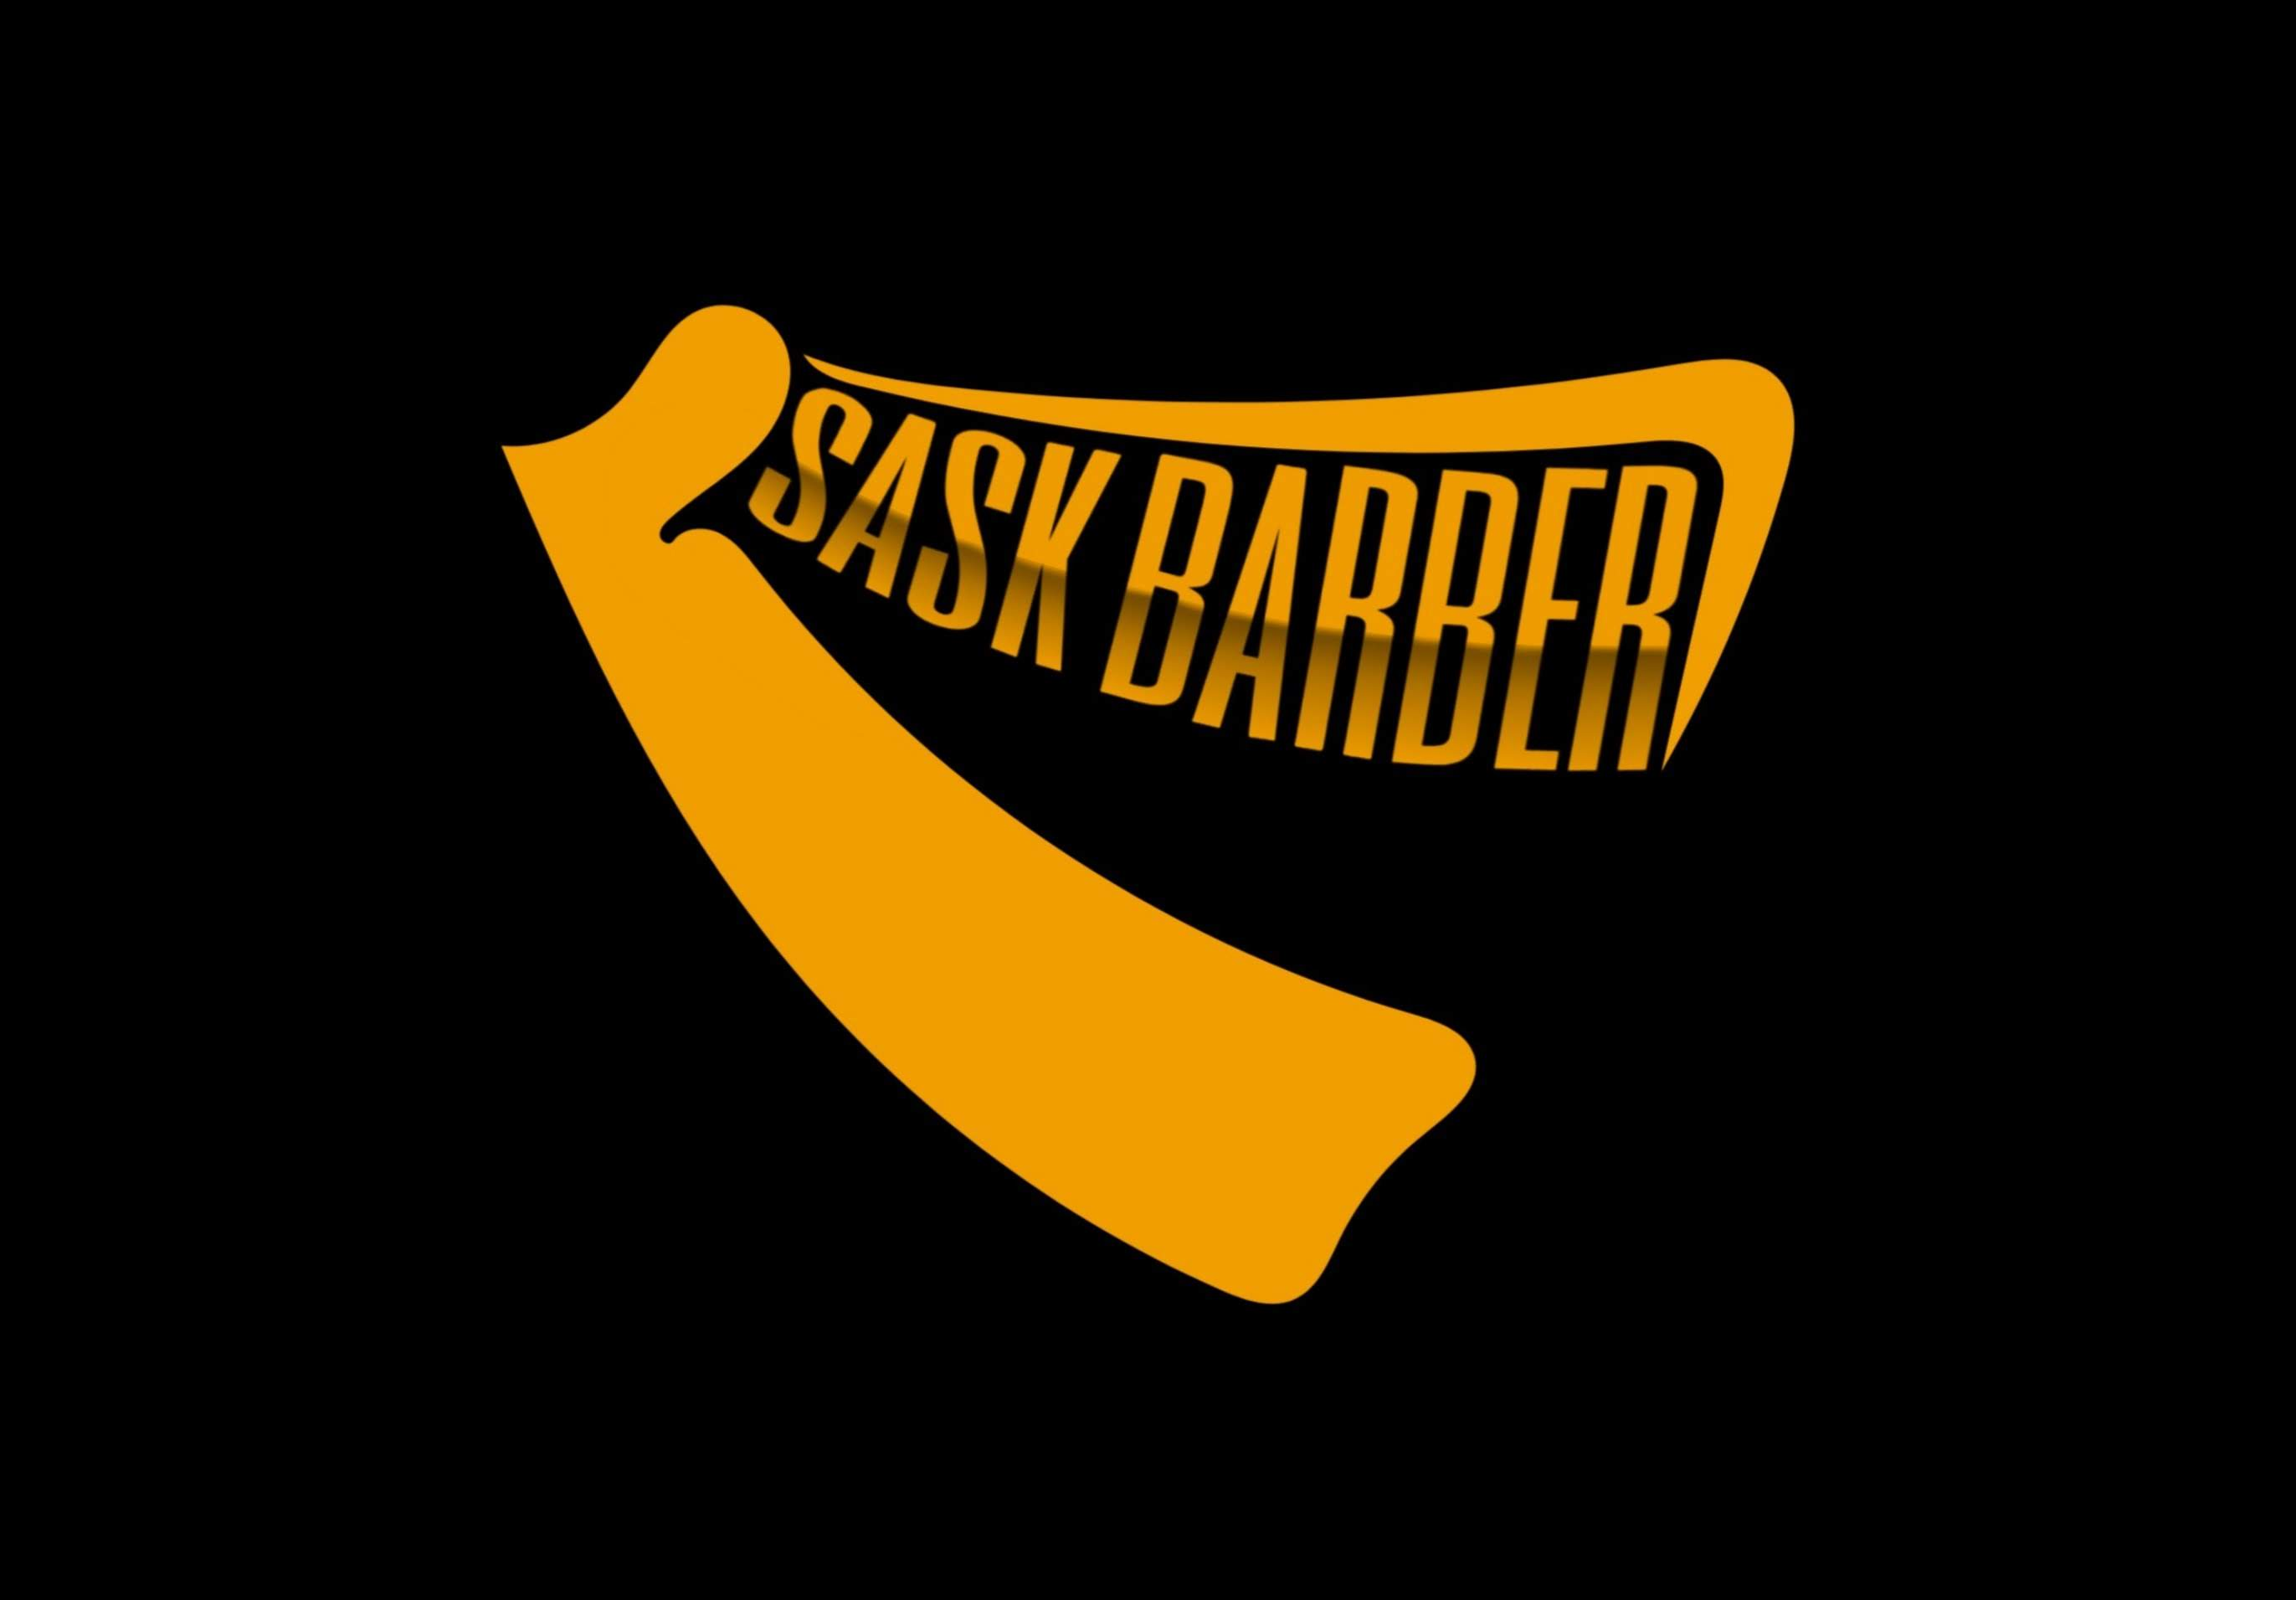 The Golden Hairport Inc. (SASKBARBER)